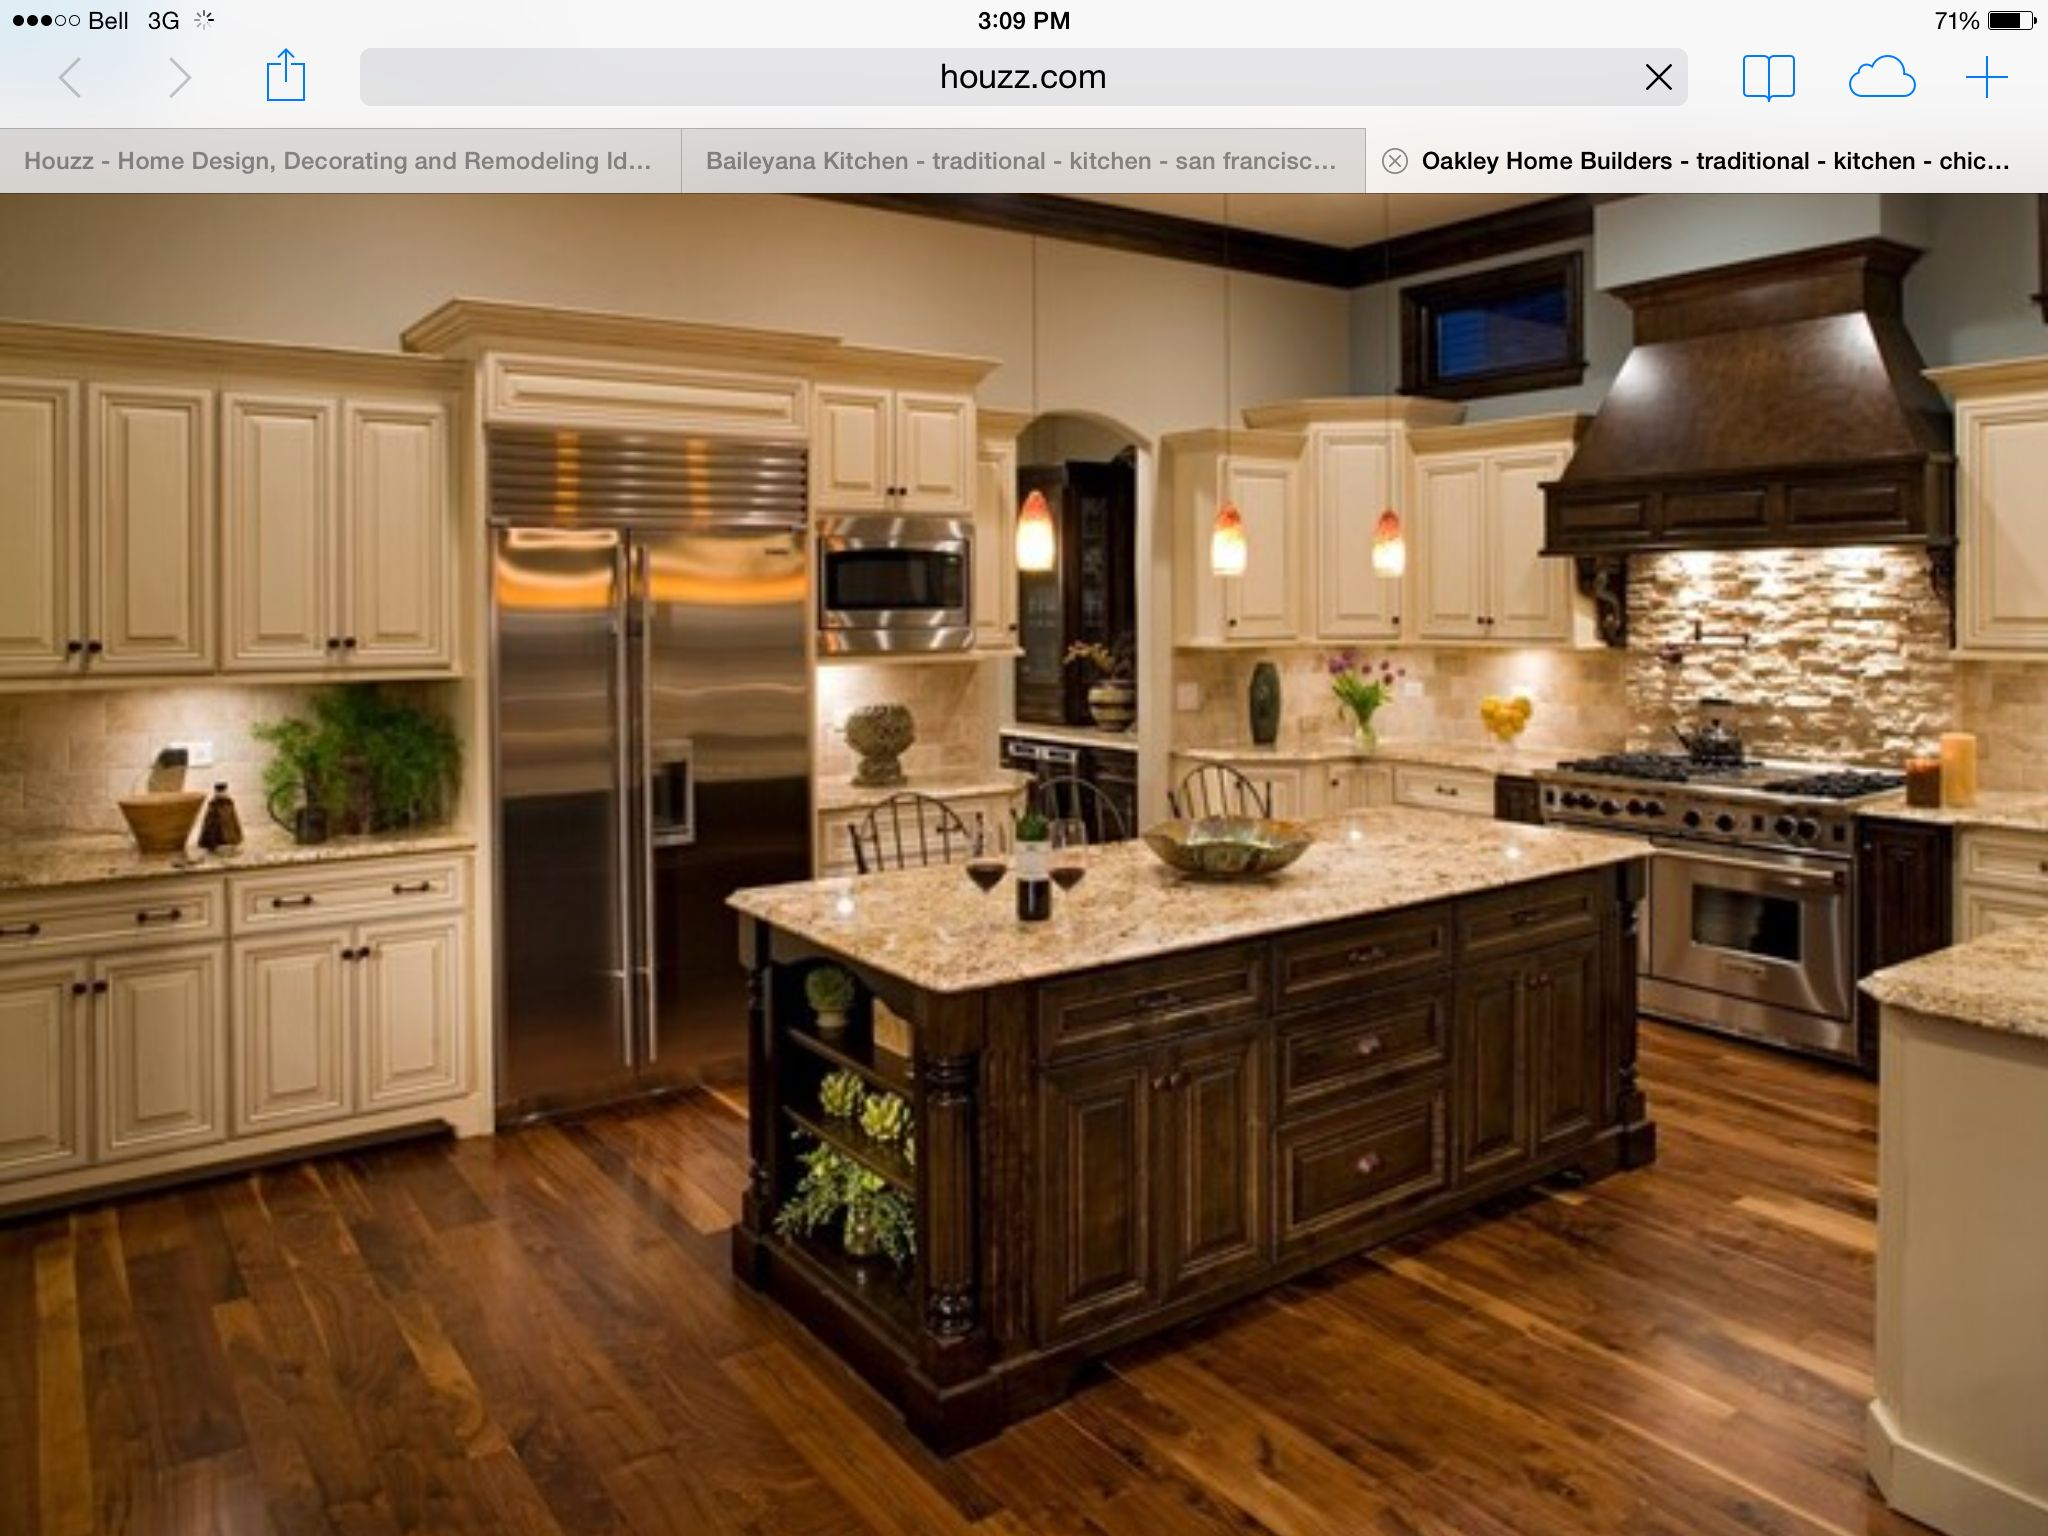 Kitchen kitchen pinterest